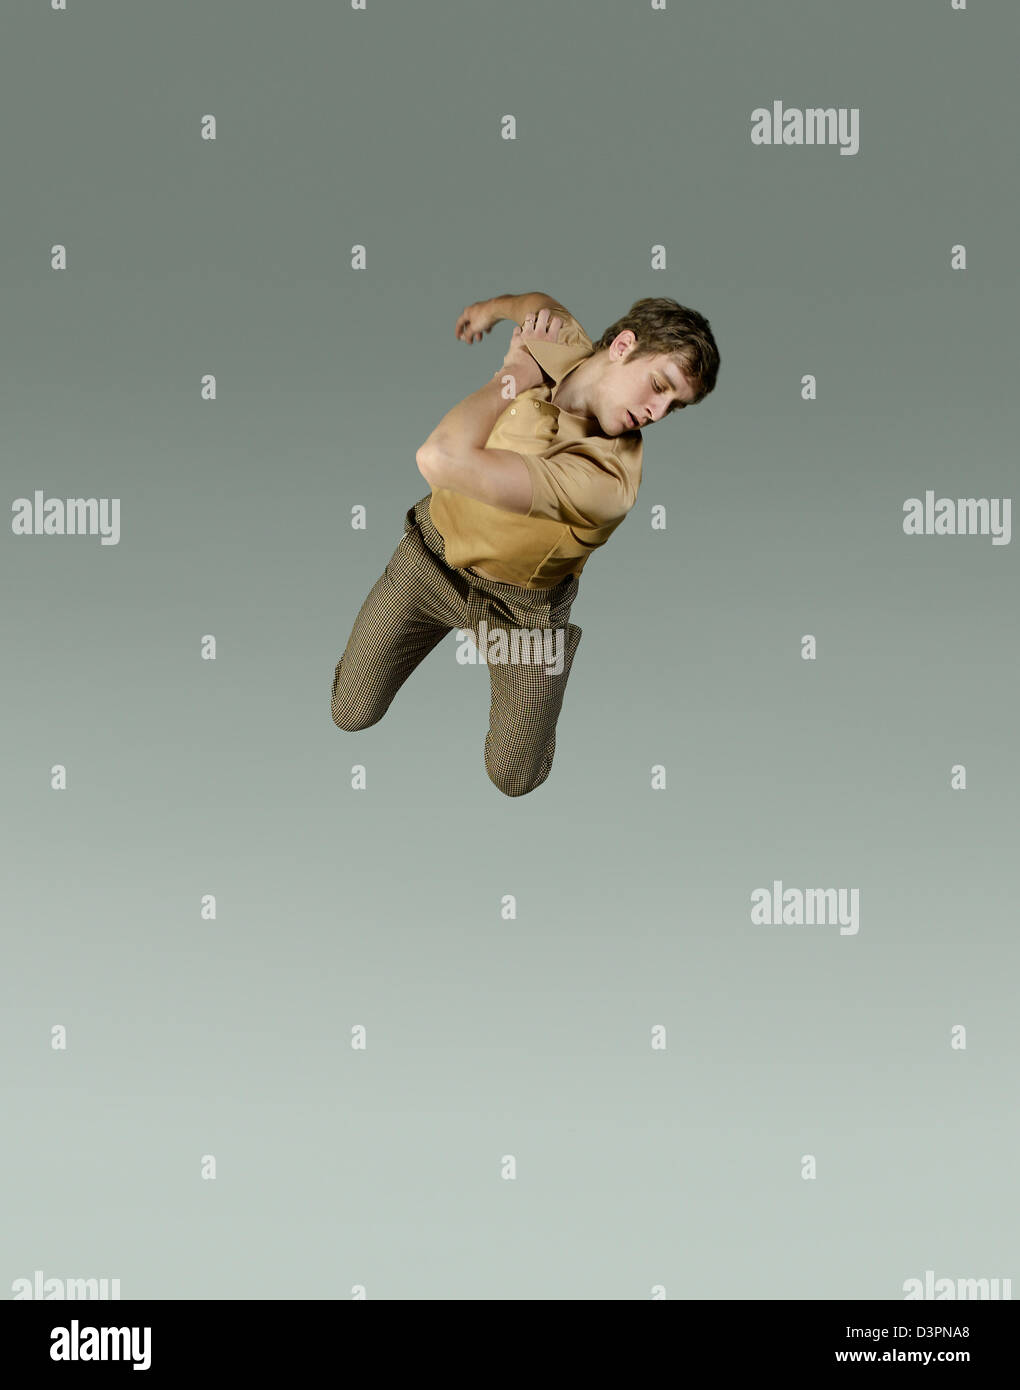 Humans floating frozen in mid air - Stock Image